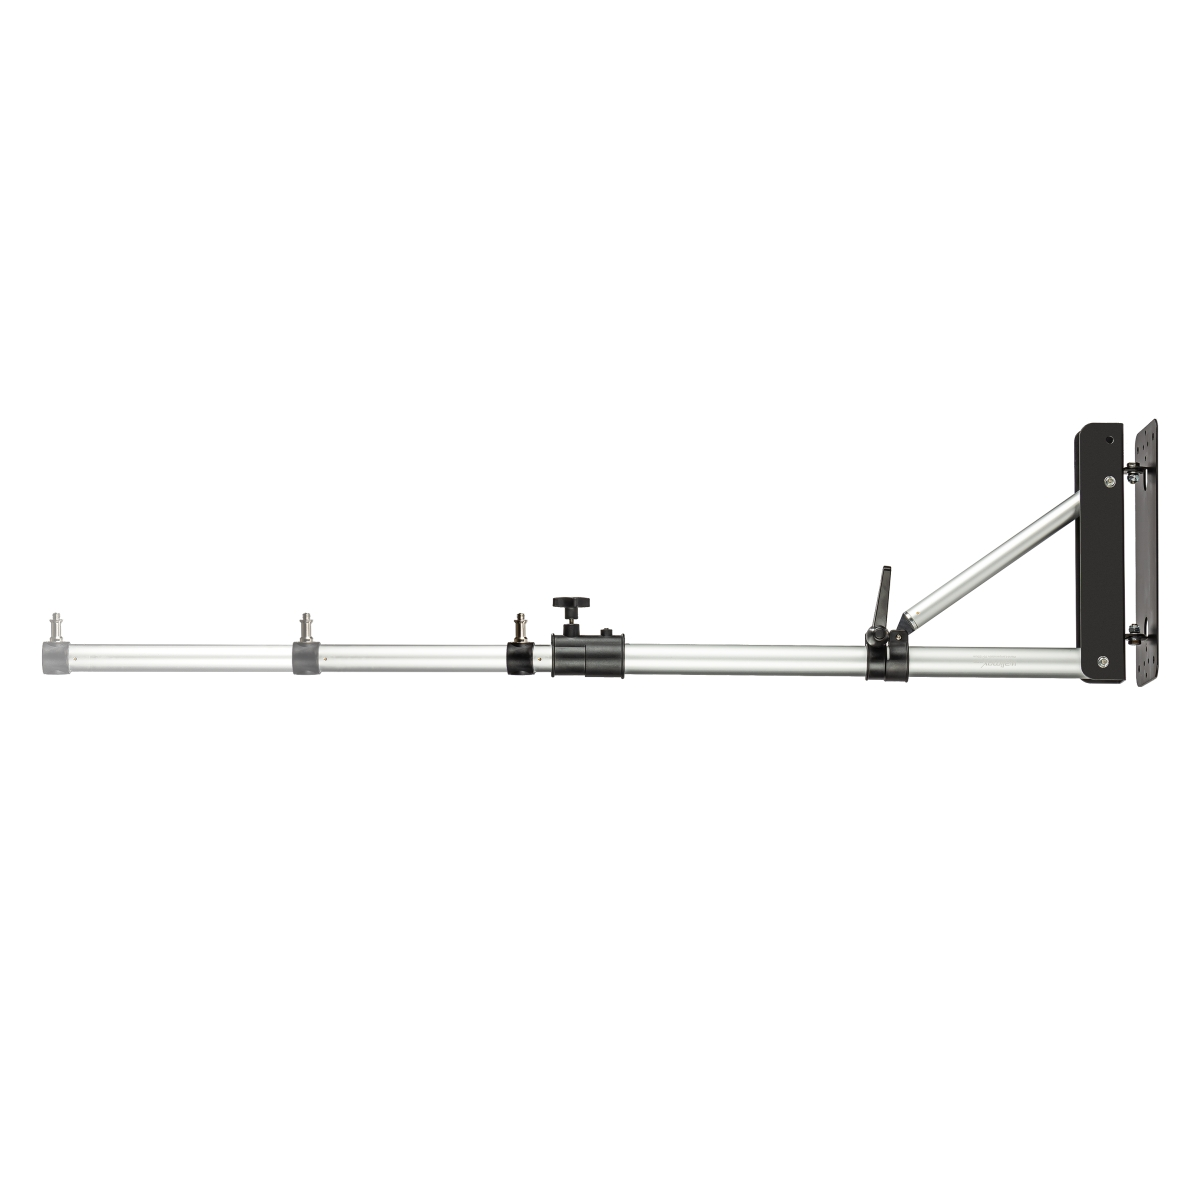 Walimex pro Wall Lamp Support, 70-120cm